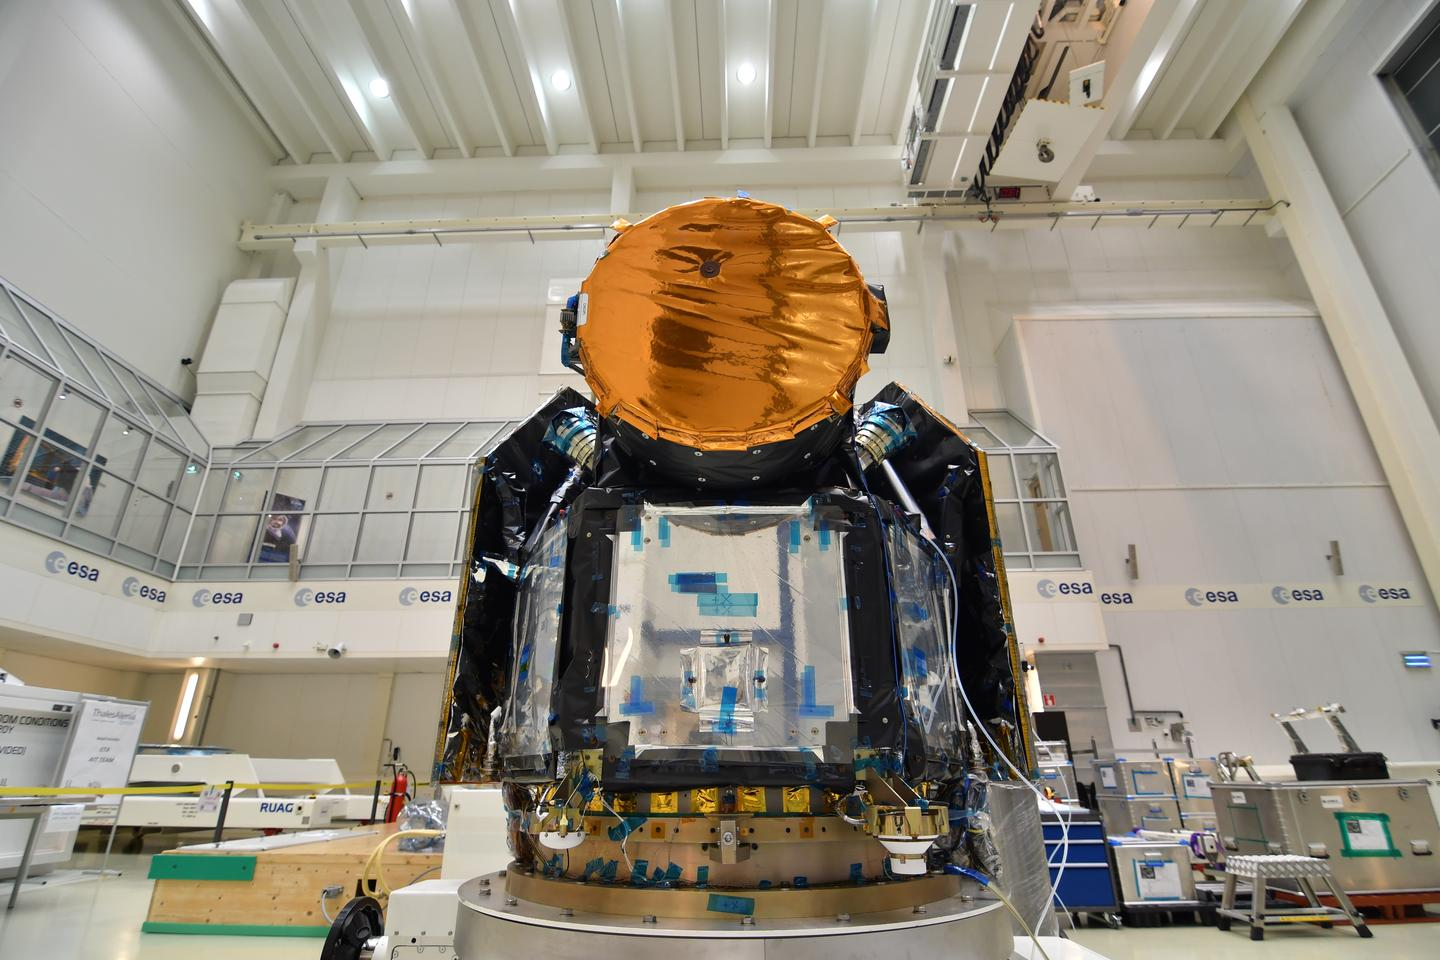 The CHaracterising ExOPlanets Satellite (CHEOPS) at ESA's technical center